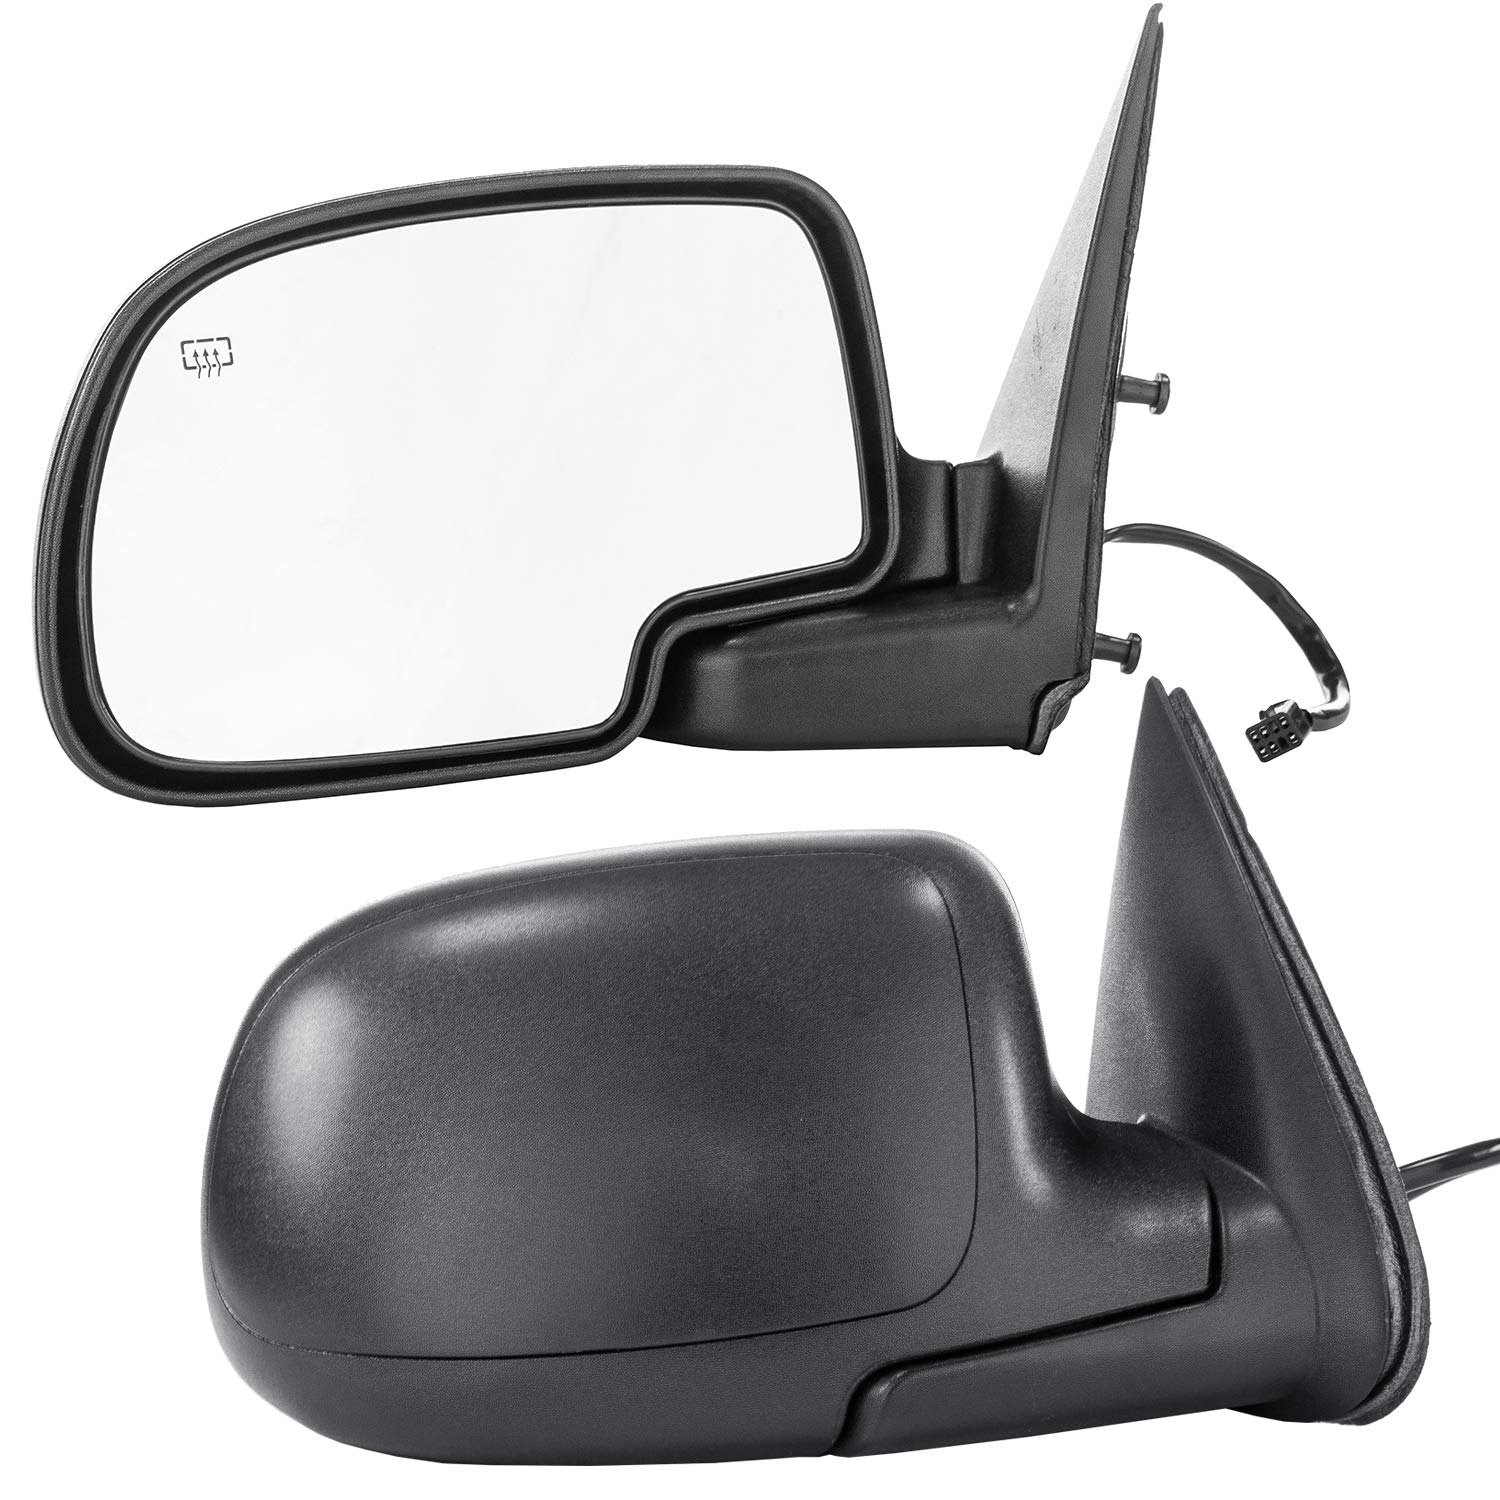 Dependable Direct Side Heated Mirrors for 00-05 Chevy Suburban, Tahoe Yukon GM1321247 - CHECK FITMENT IN DESCRIPTION